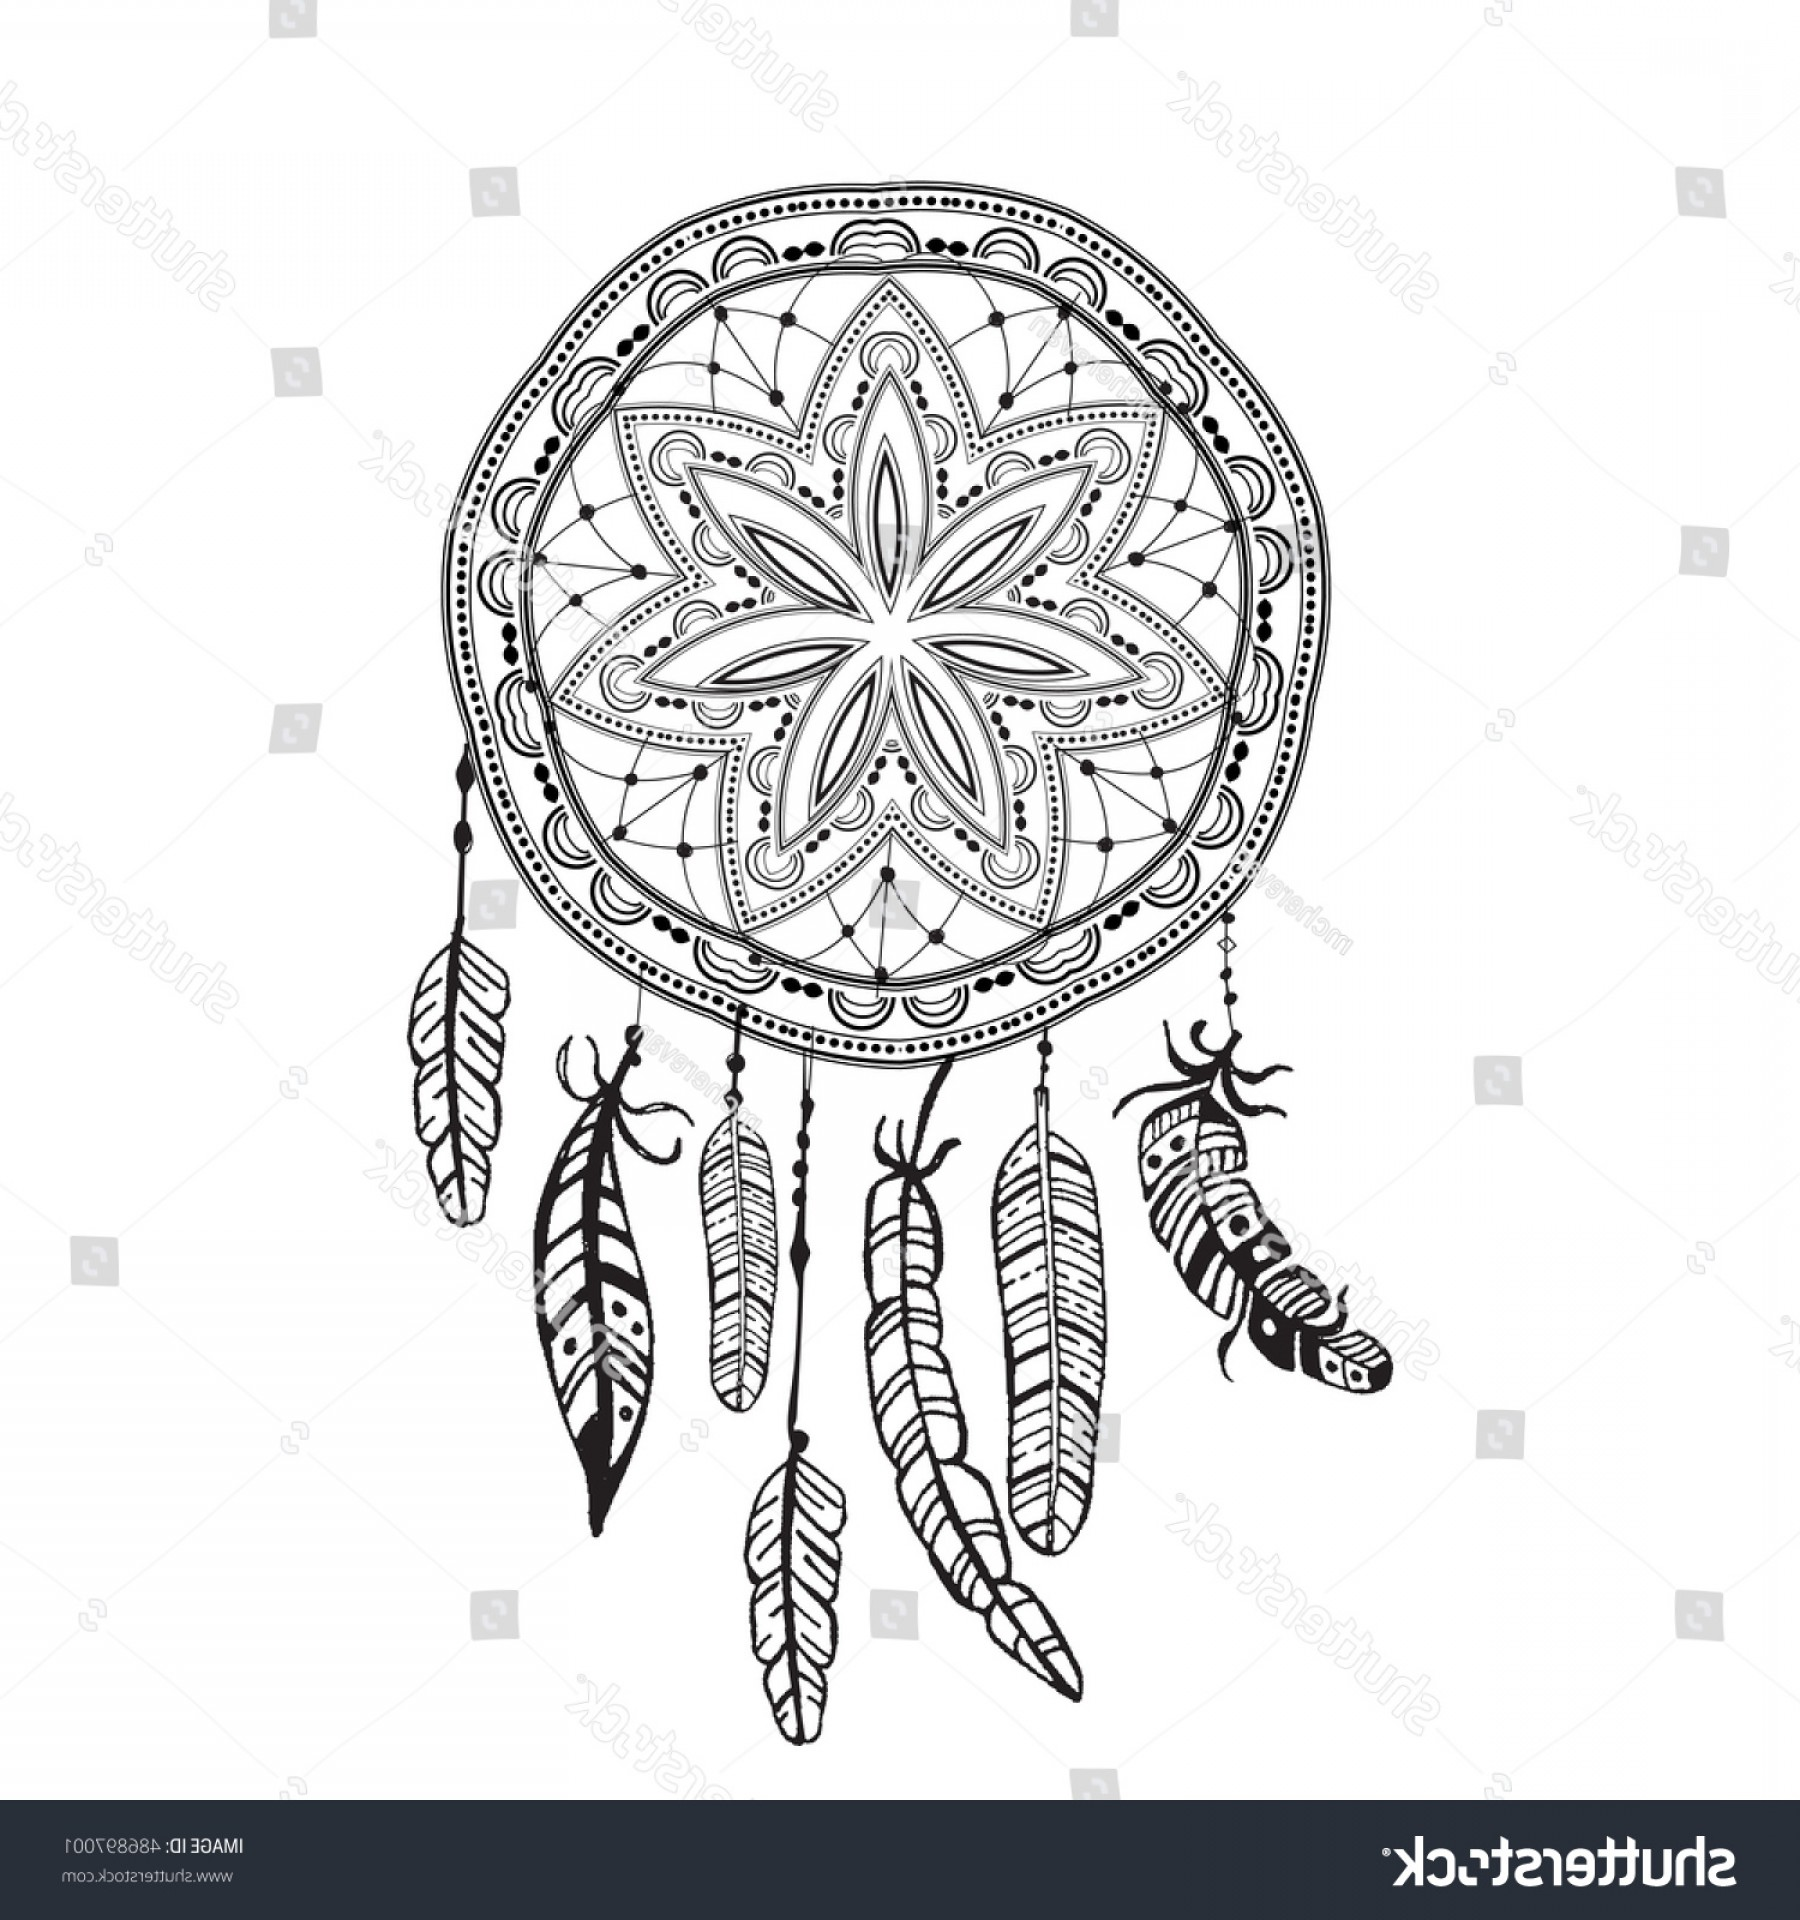 Dreamcatcher Tattoo Vector: Dreamcatcher Detailed Feathers Sketch Tattoo Boho